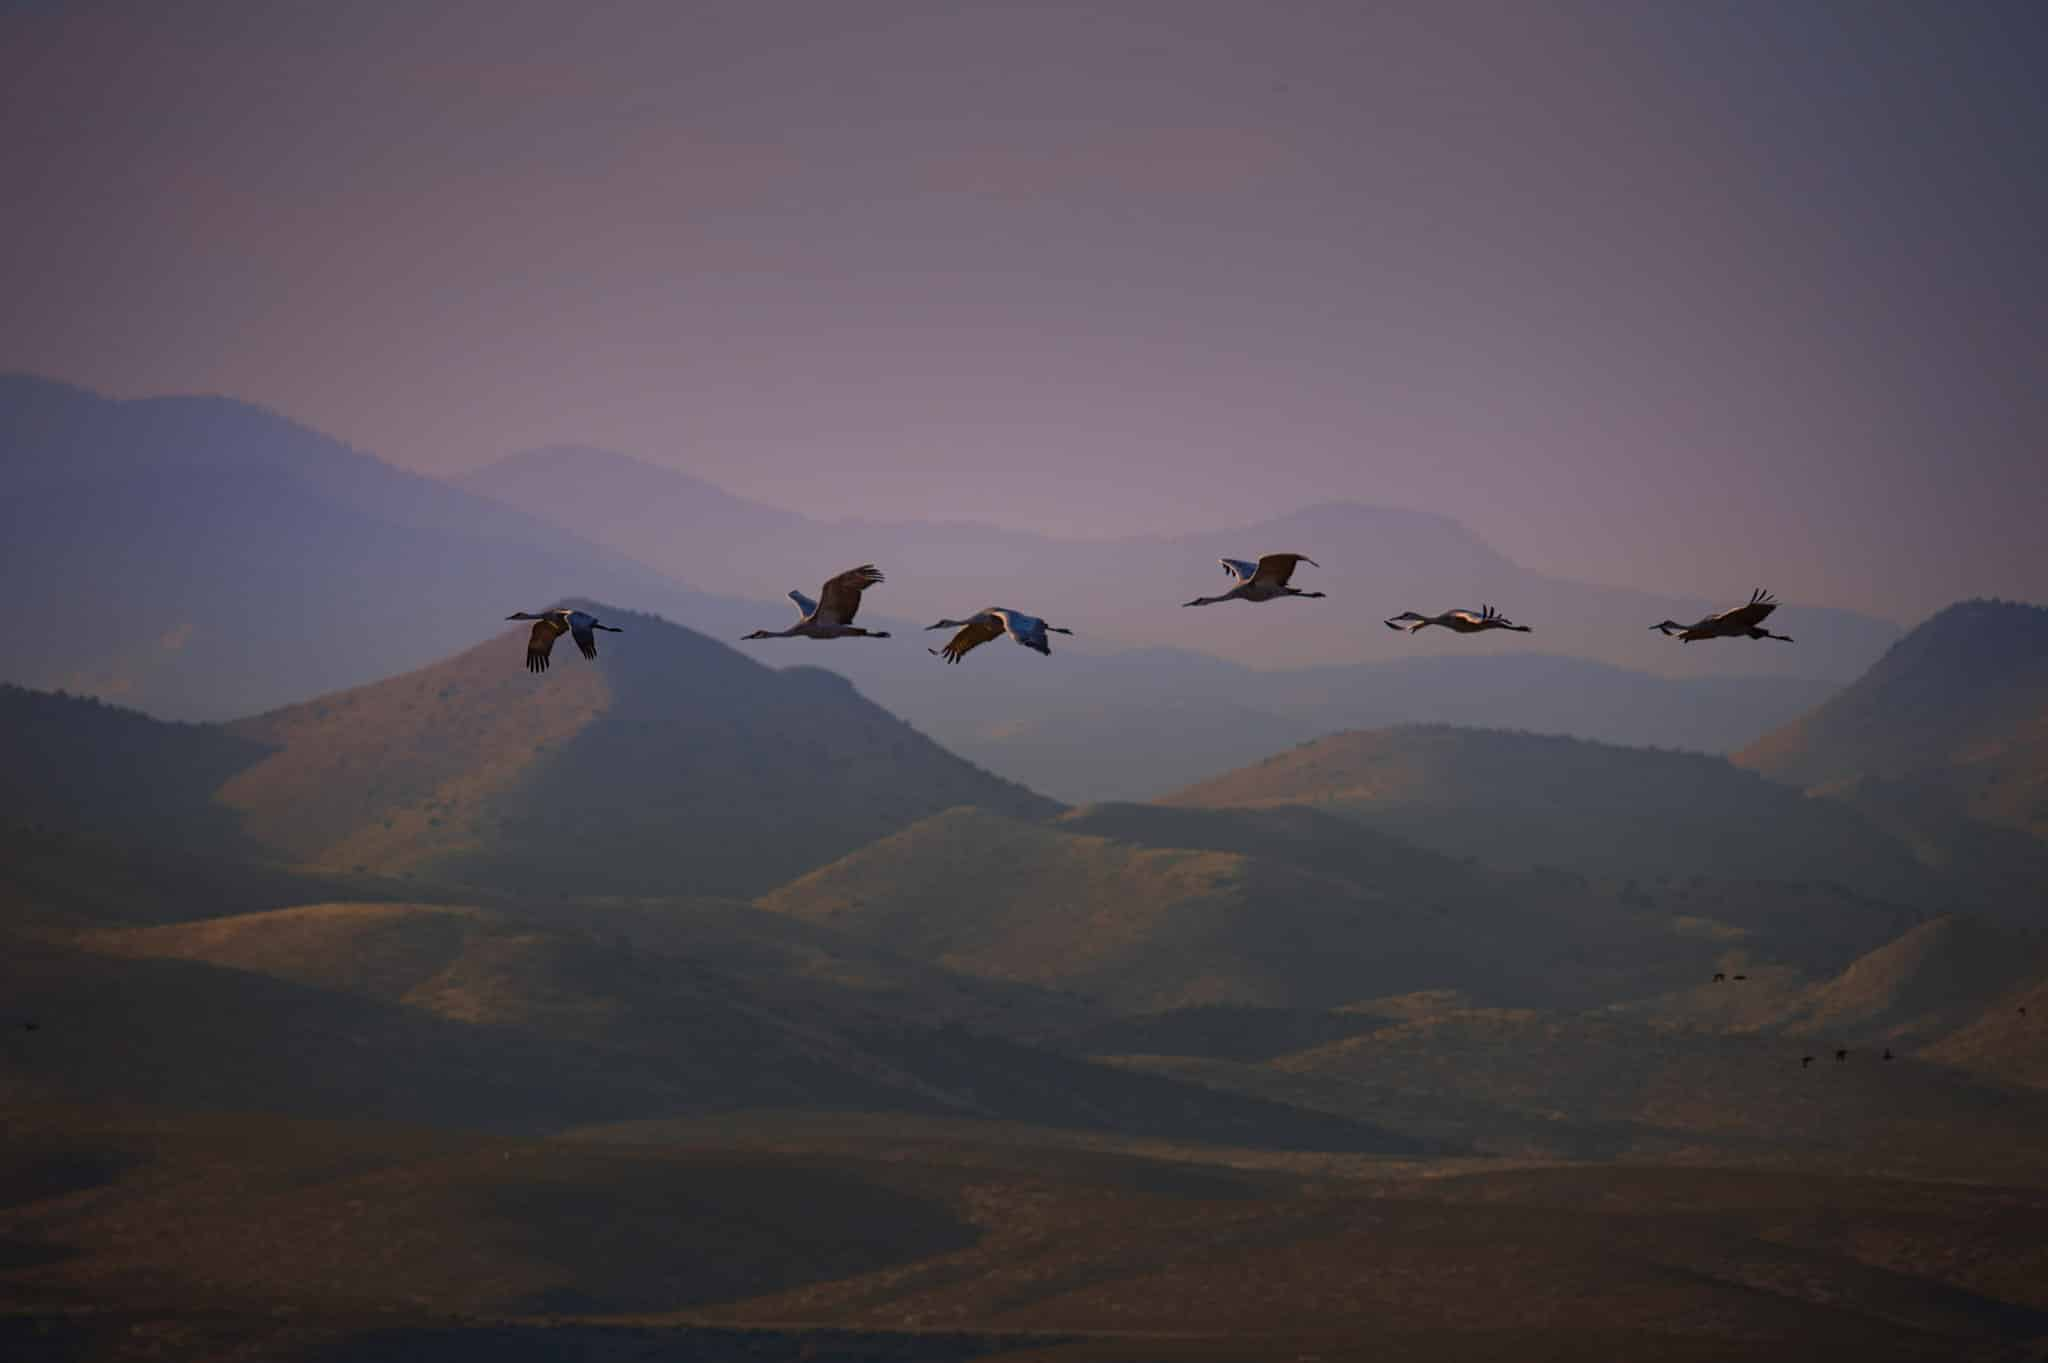 Six Sandhill Cranes fly in a line, each with a slightly different winf position, in Bosque del Apache NWR near Socorro, New Mexico.